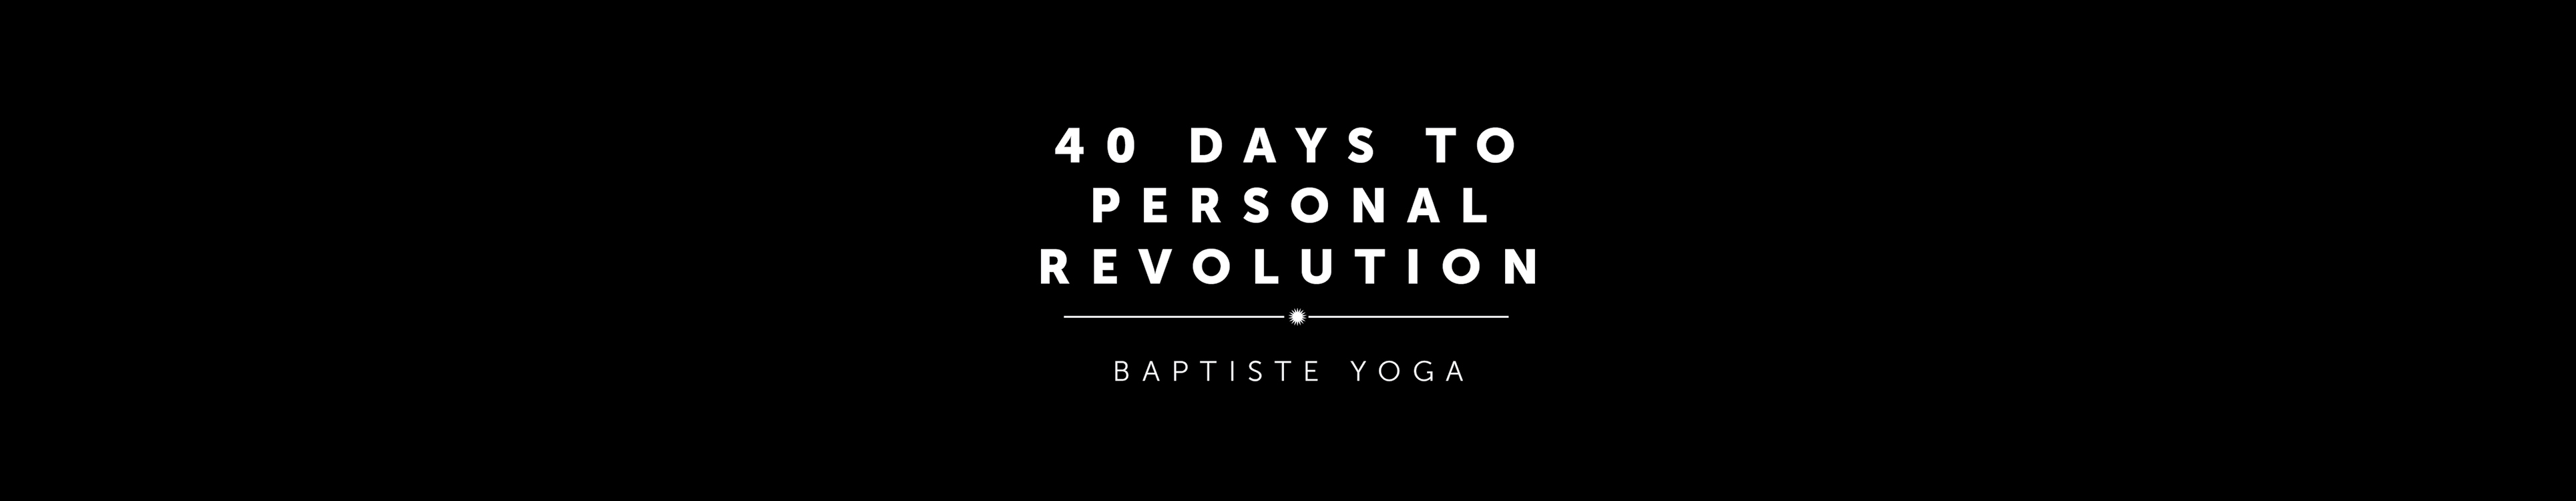 40 Days to Personal Revolution - Facilitator in Training